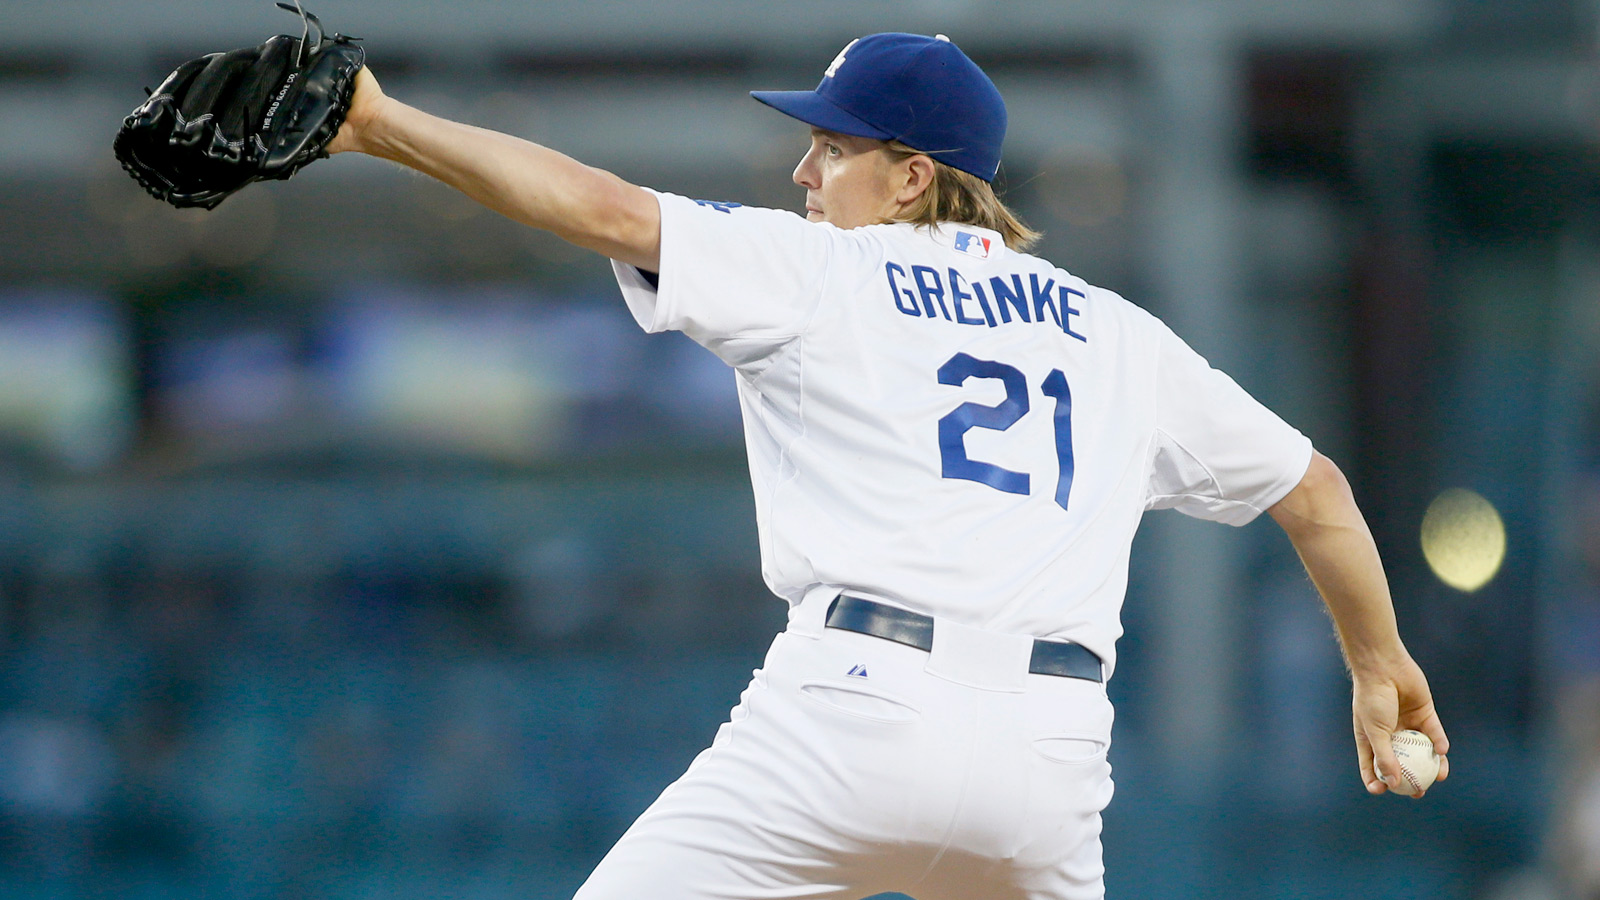 Dodgers offseason preview: Mattingly might go; Greinke must stay